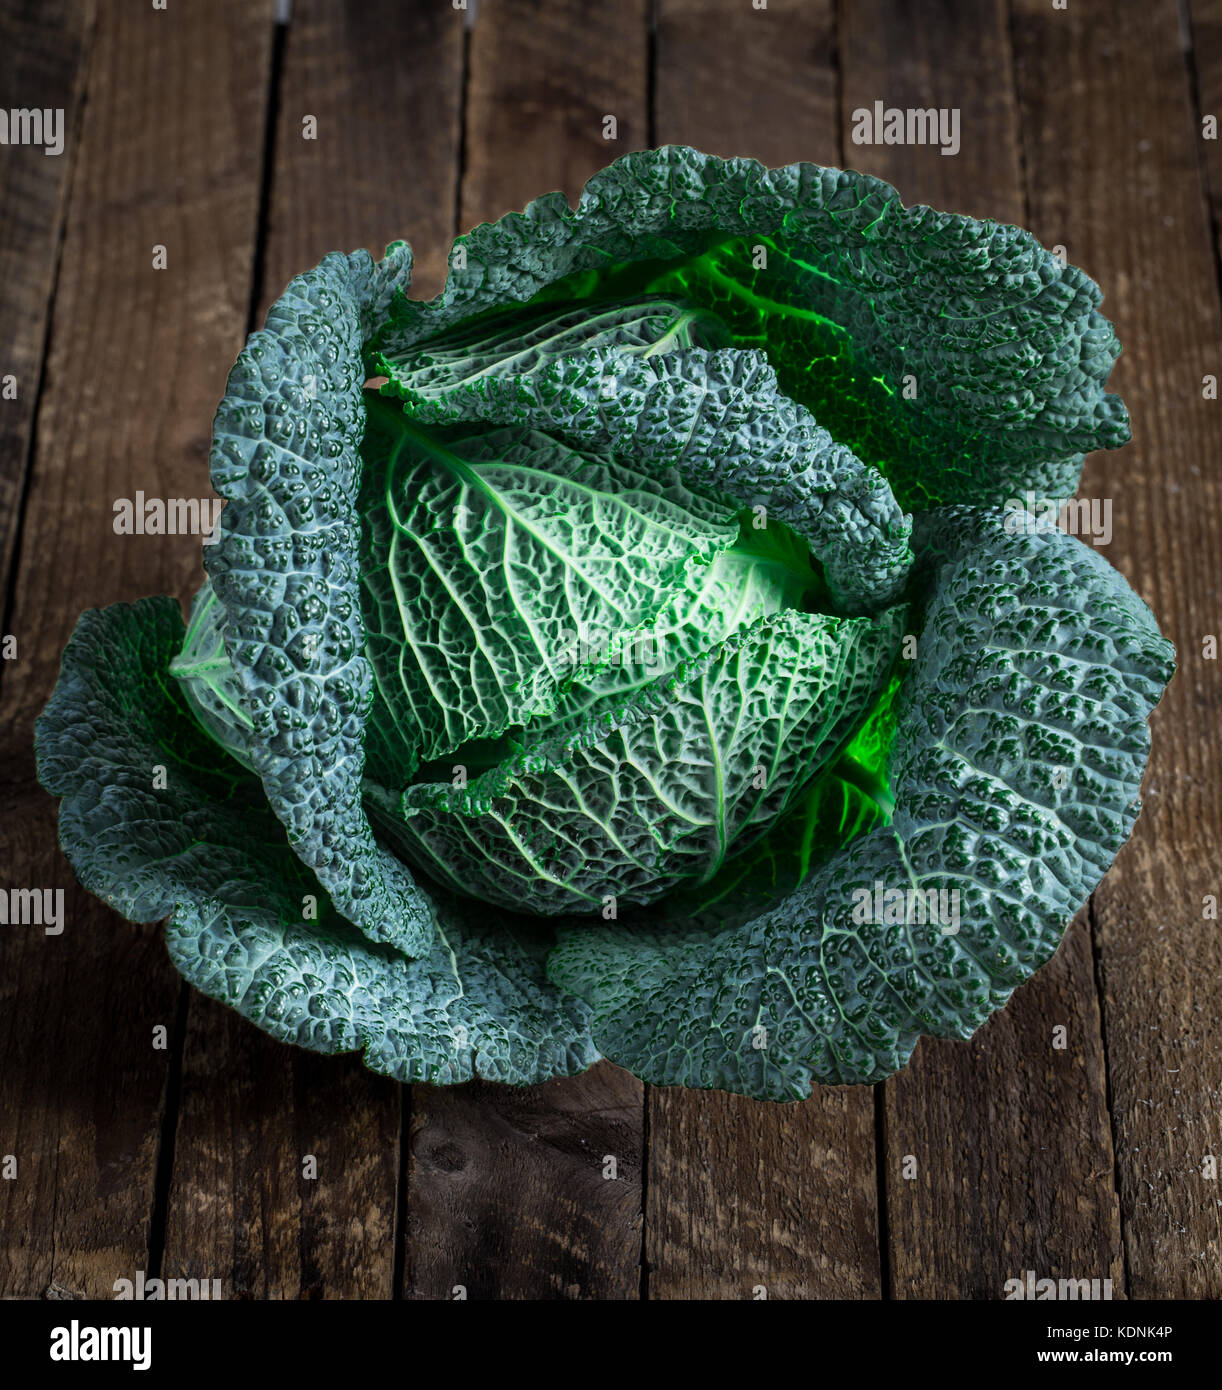 Fresh savoy cabbage - Stock Image